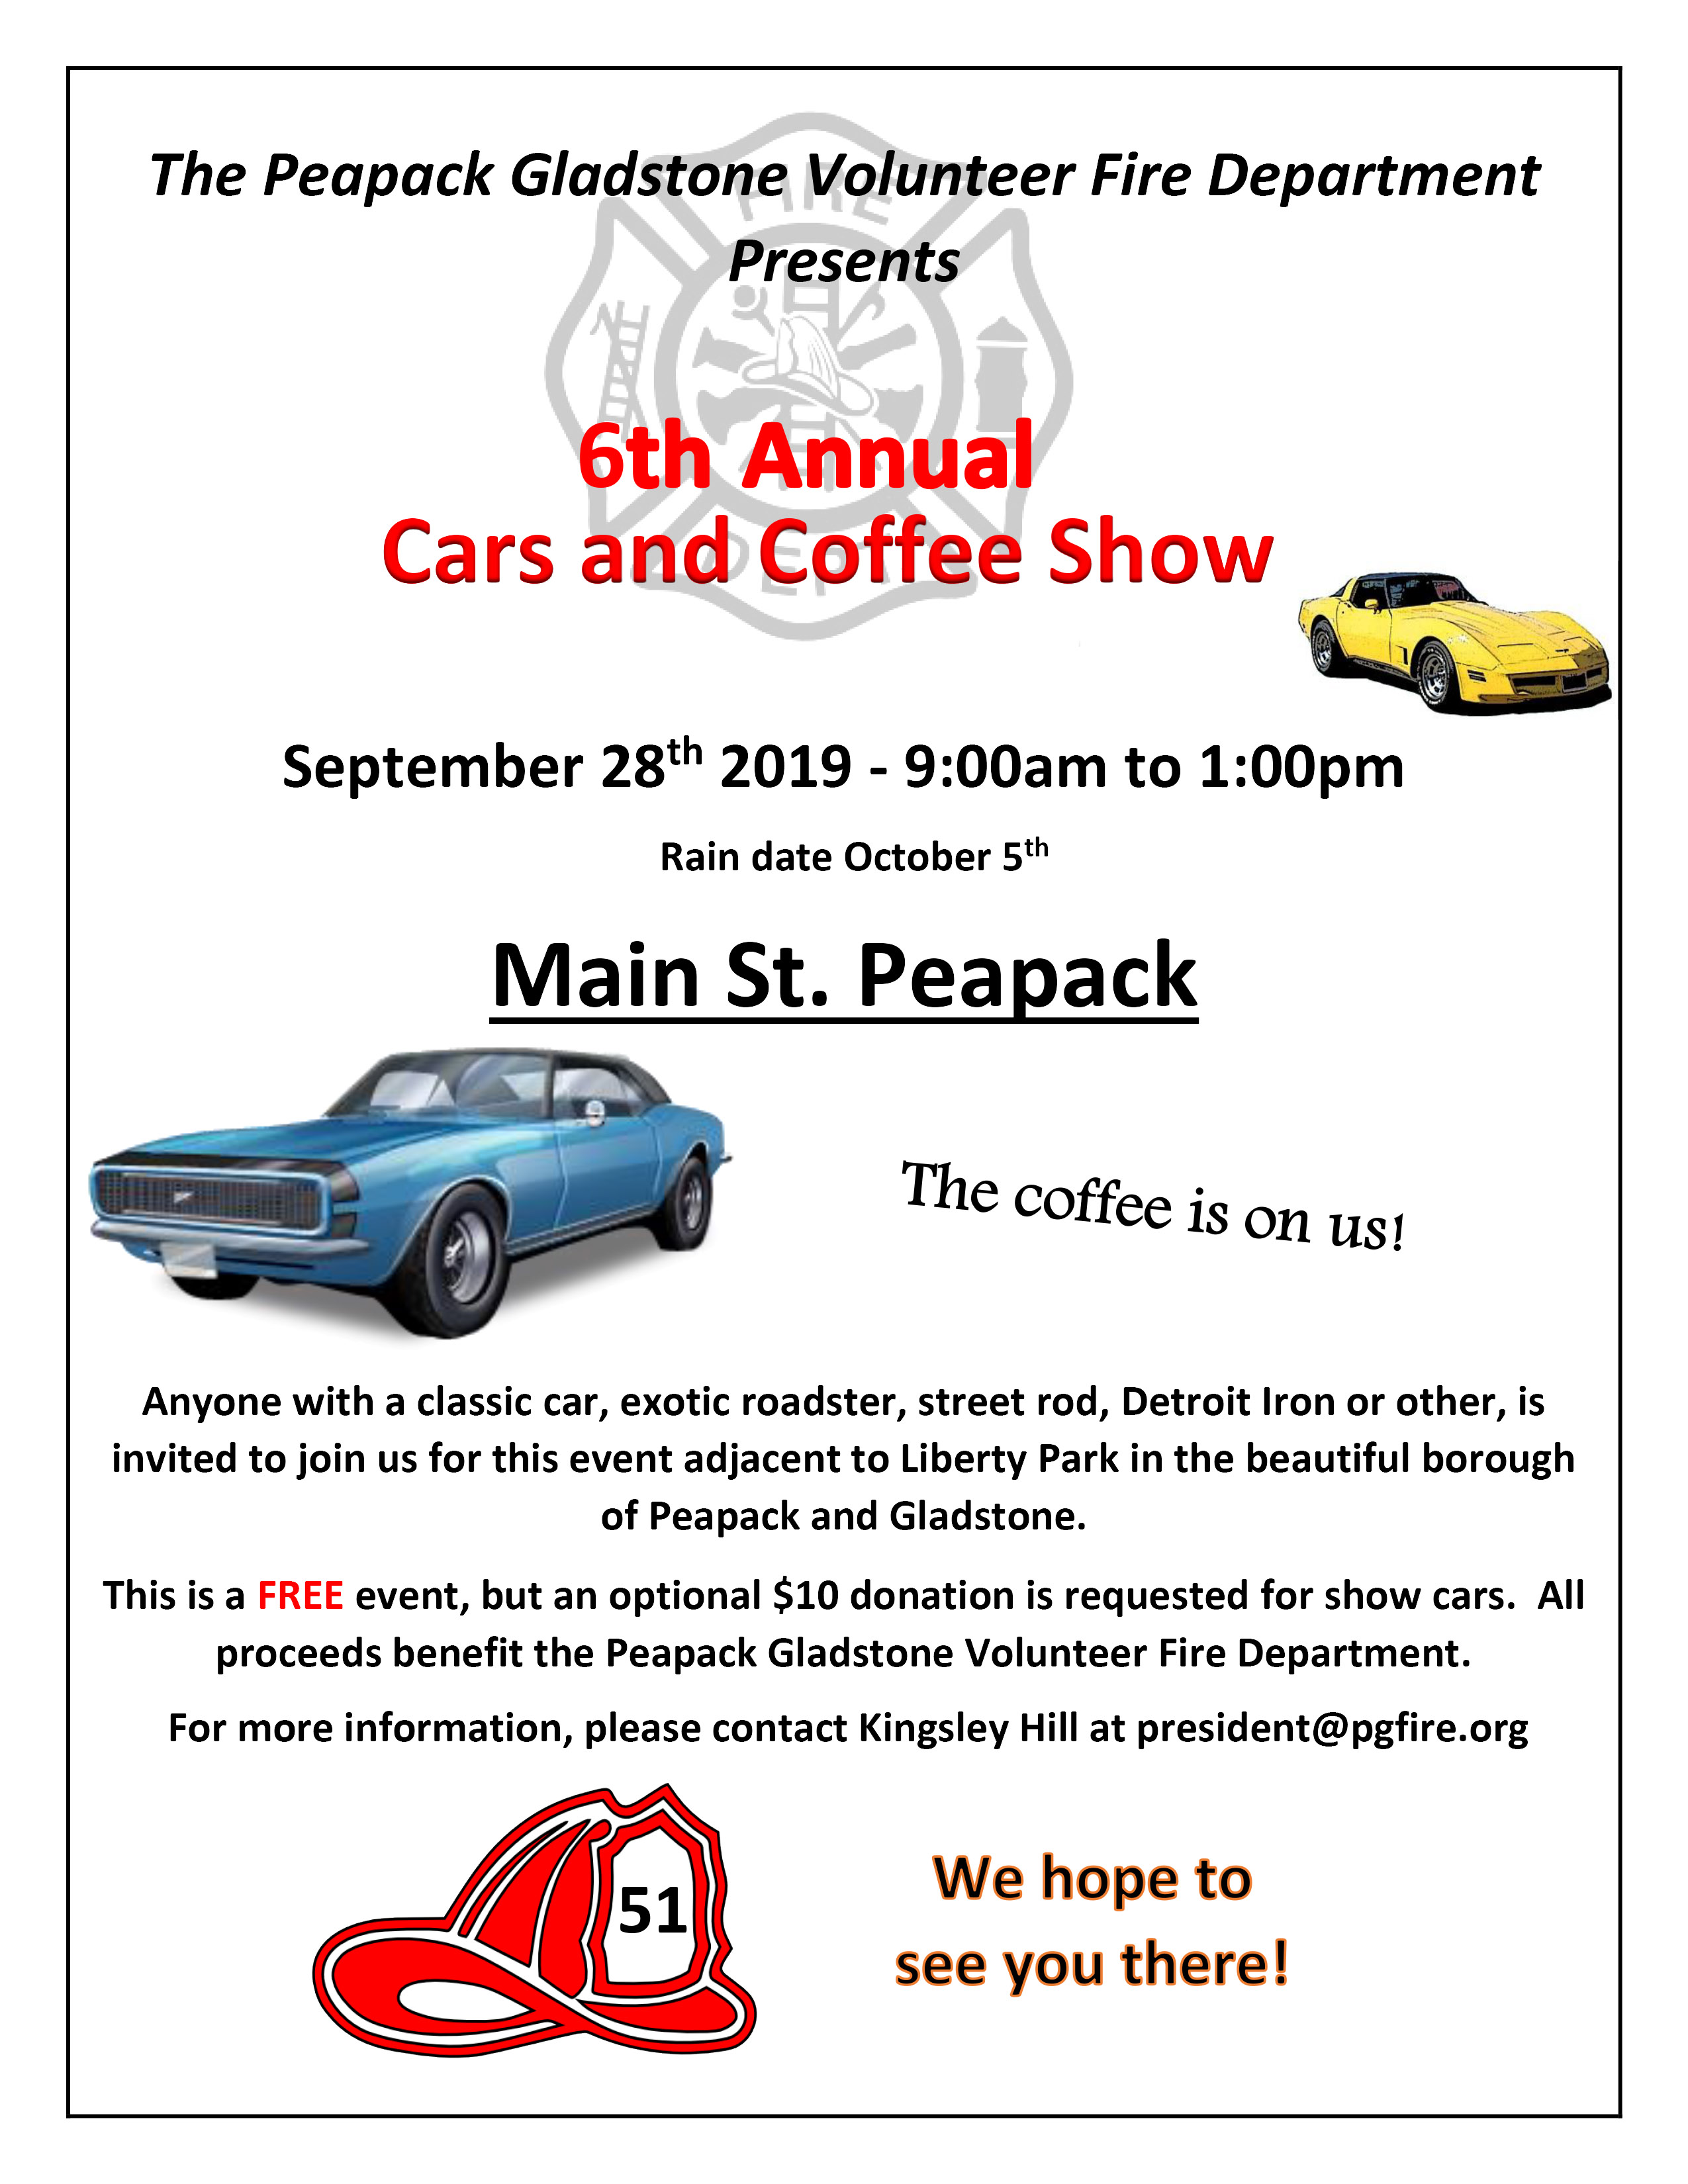 PG Volunteer Fire Department 6th annual Car Show